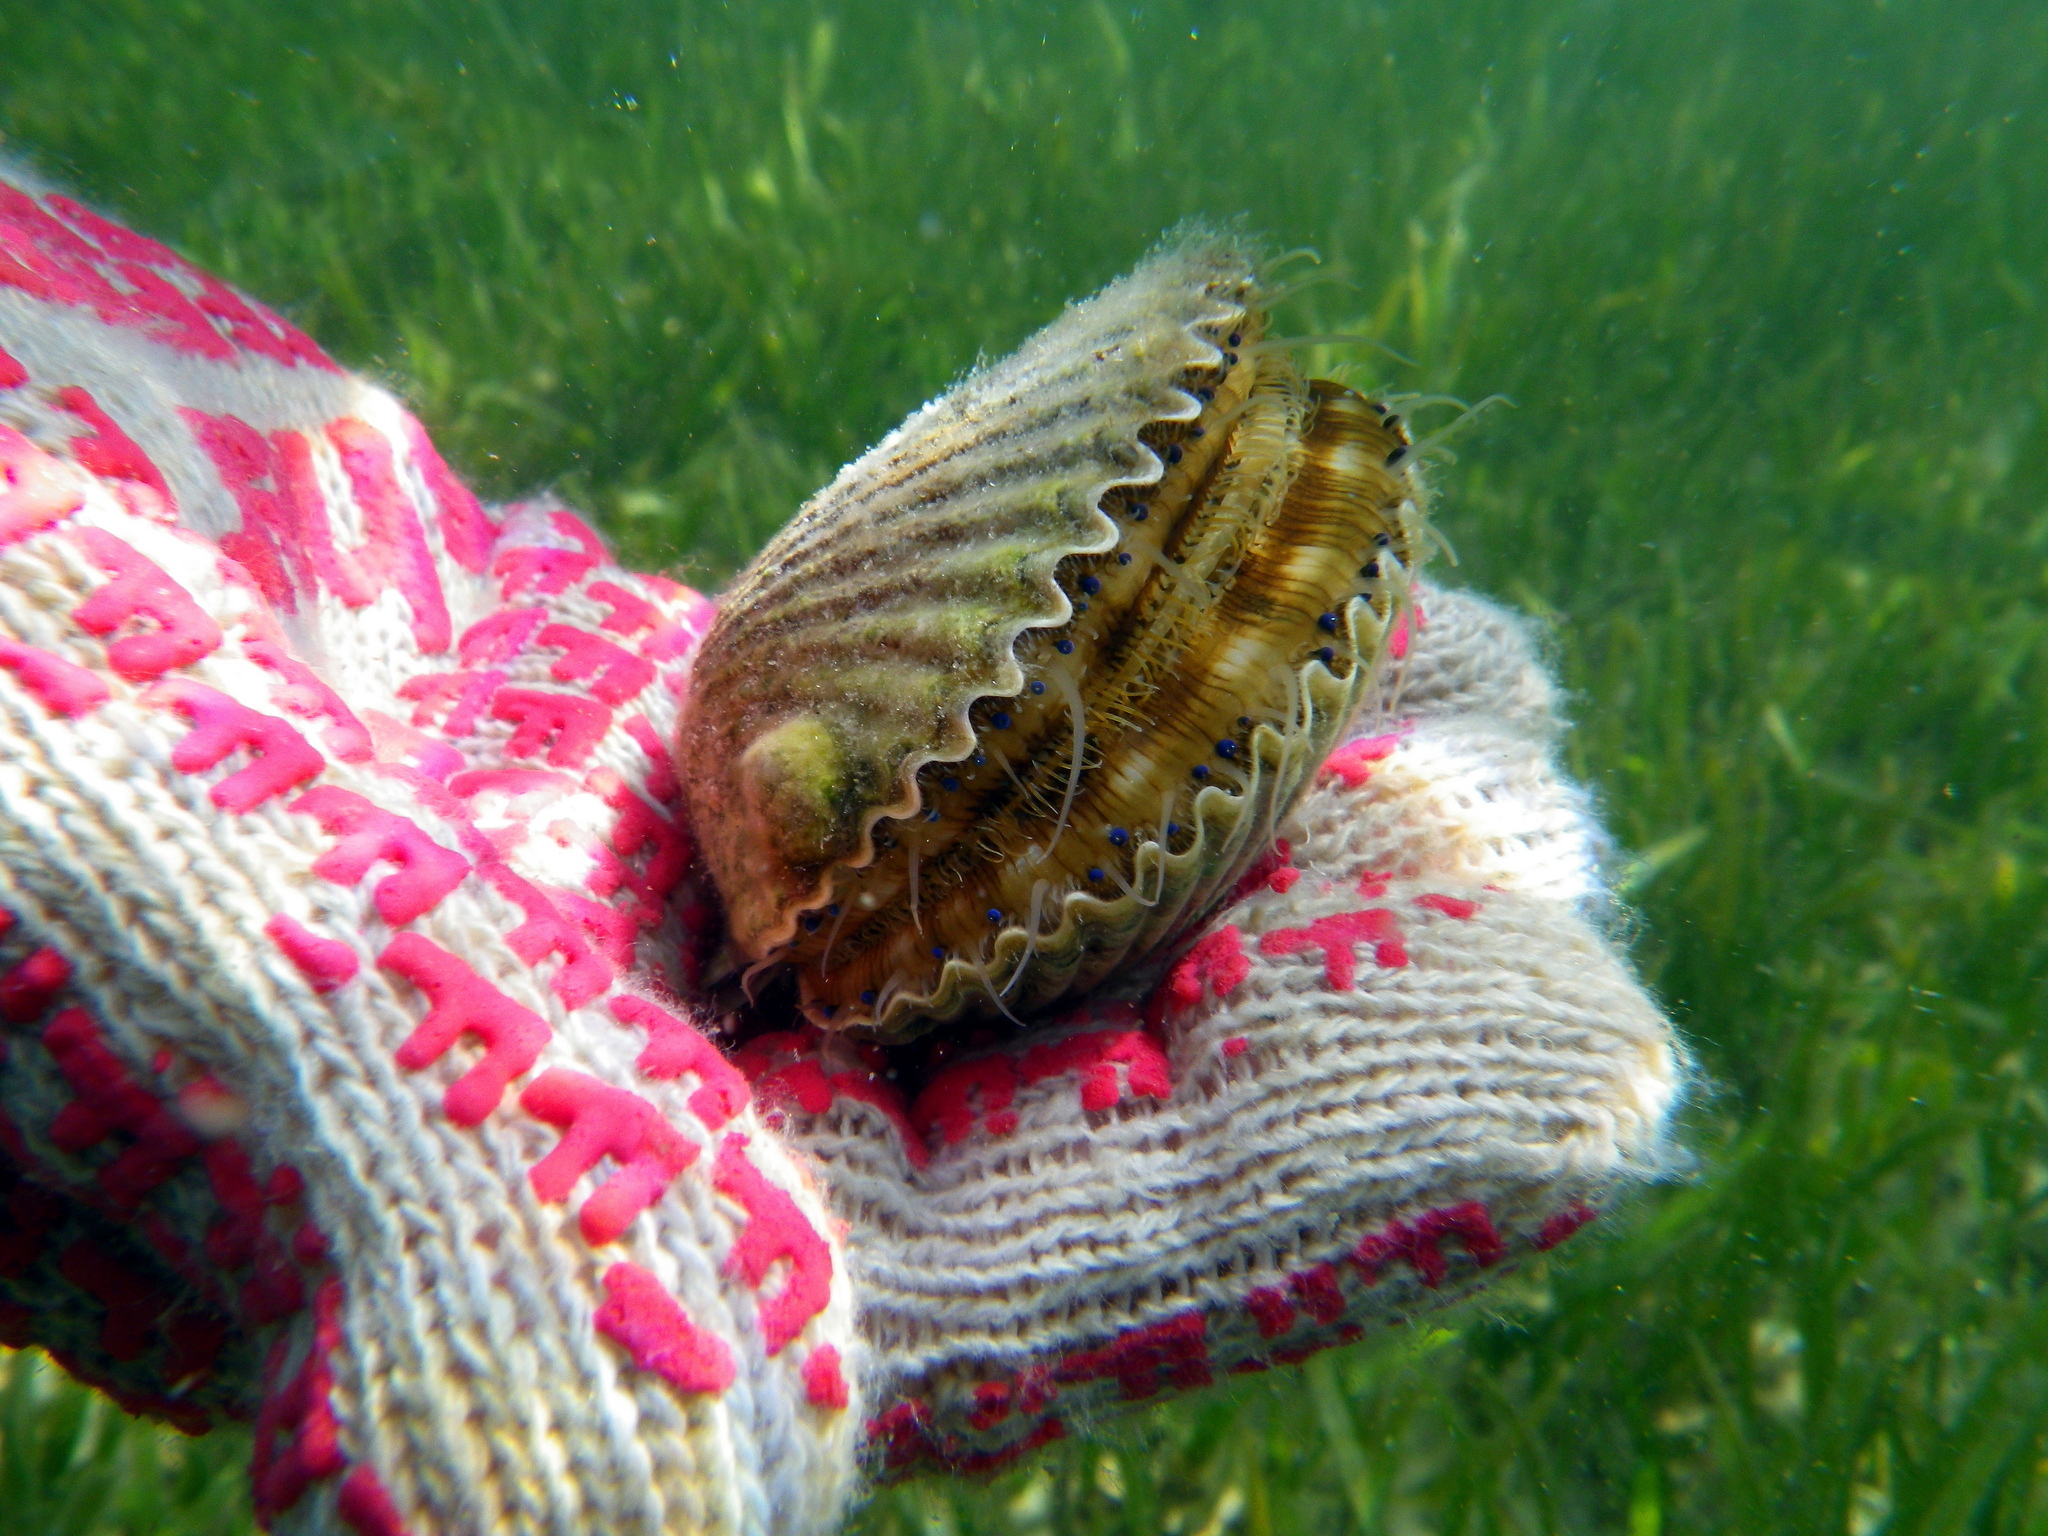 Fwc approves regional bay scallop seasons for 2018 for Florida fishing seasons